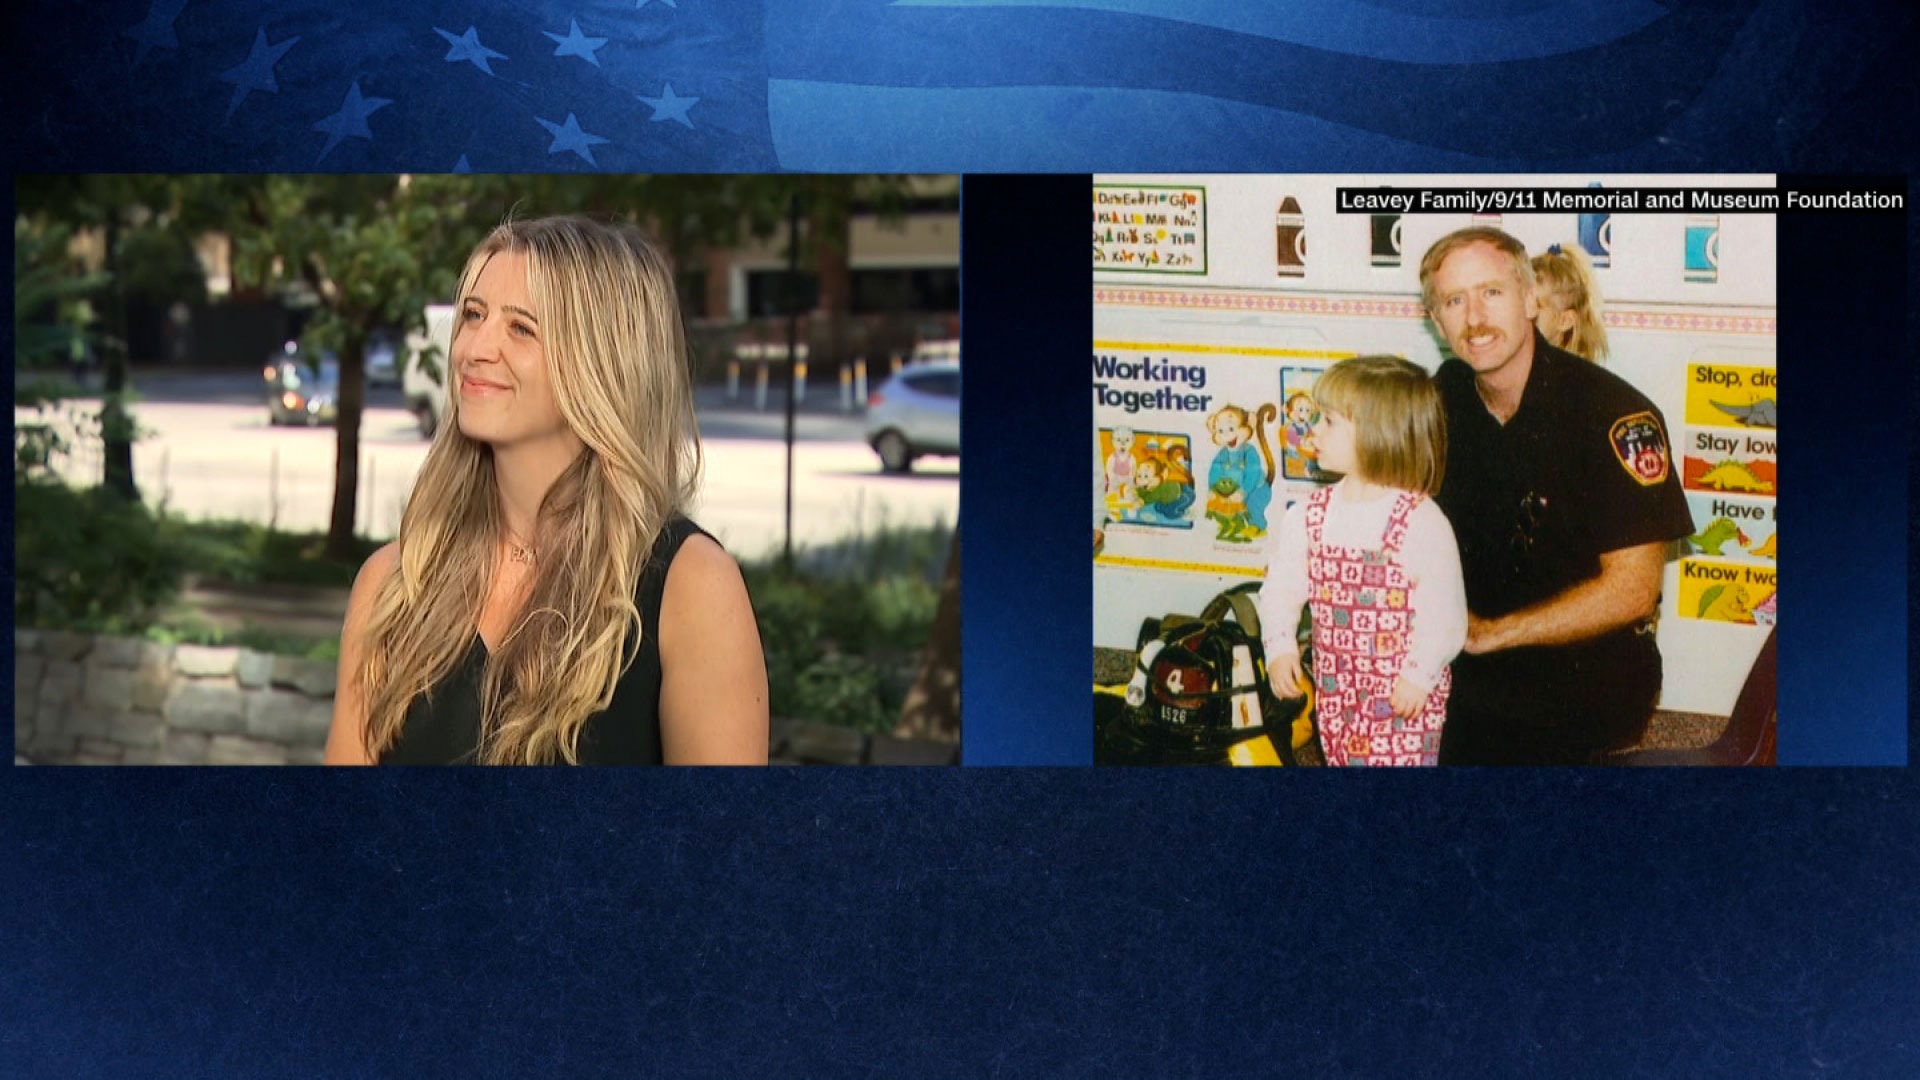 Left: Cait Leavey, the daughter of a New York City Fire Department captain killed on 9/11. Right: A photo of Leavey with her father.